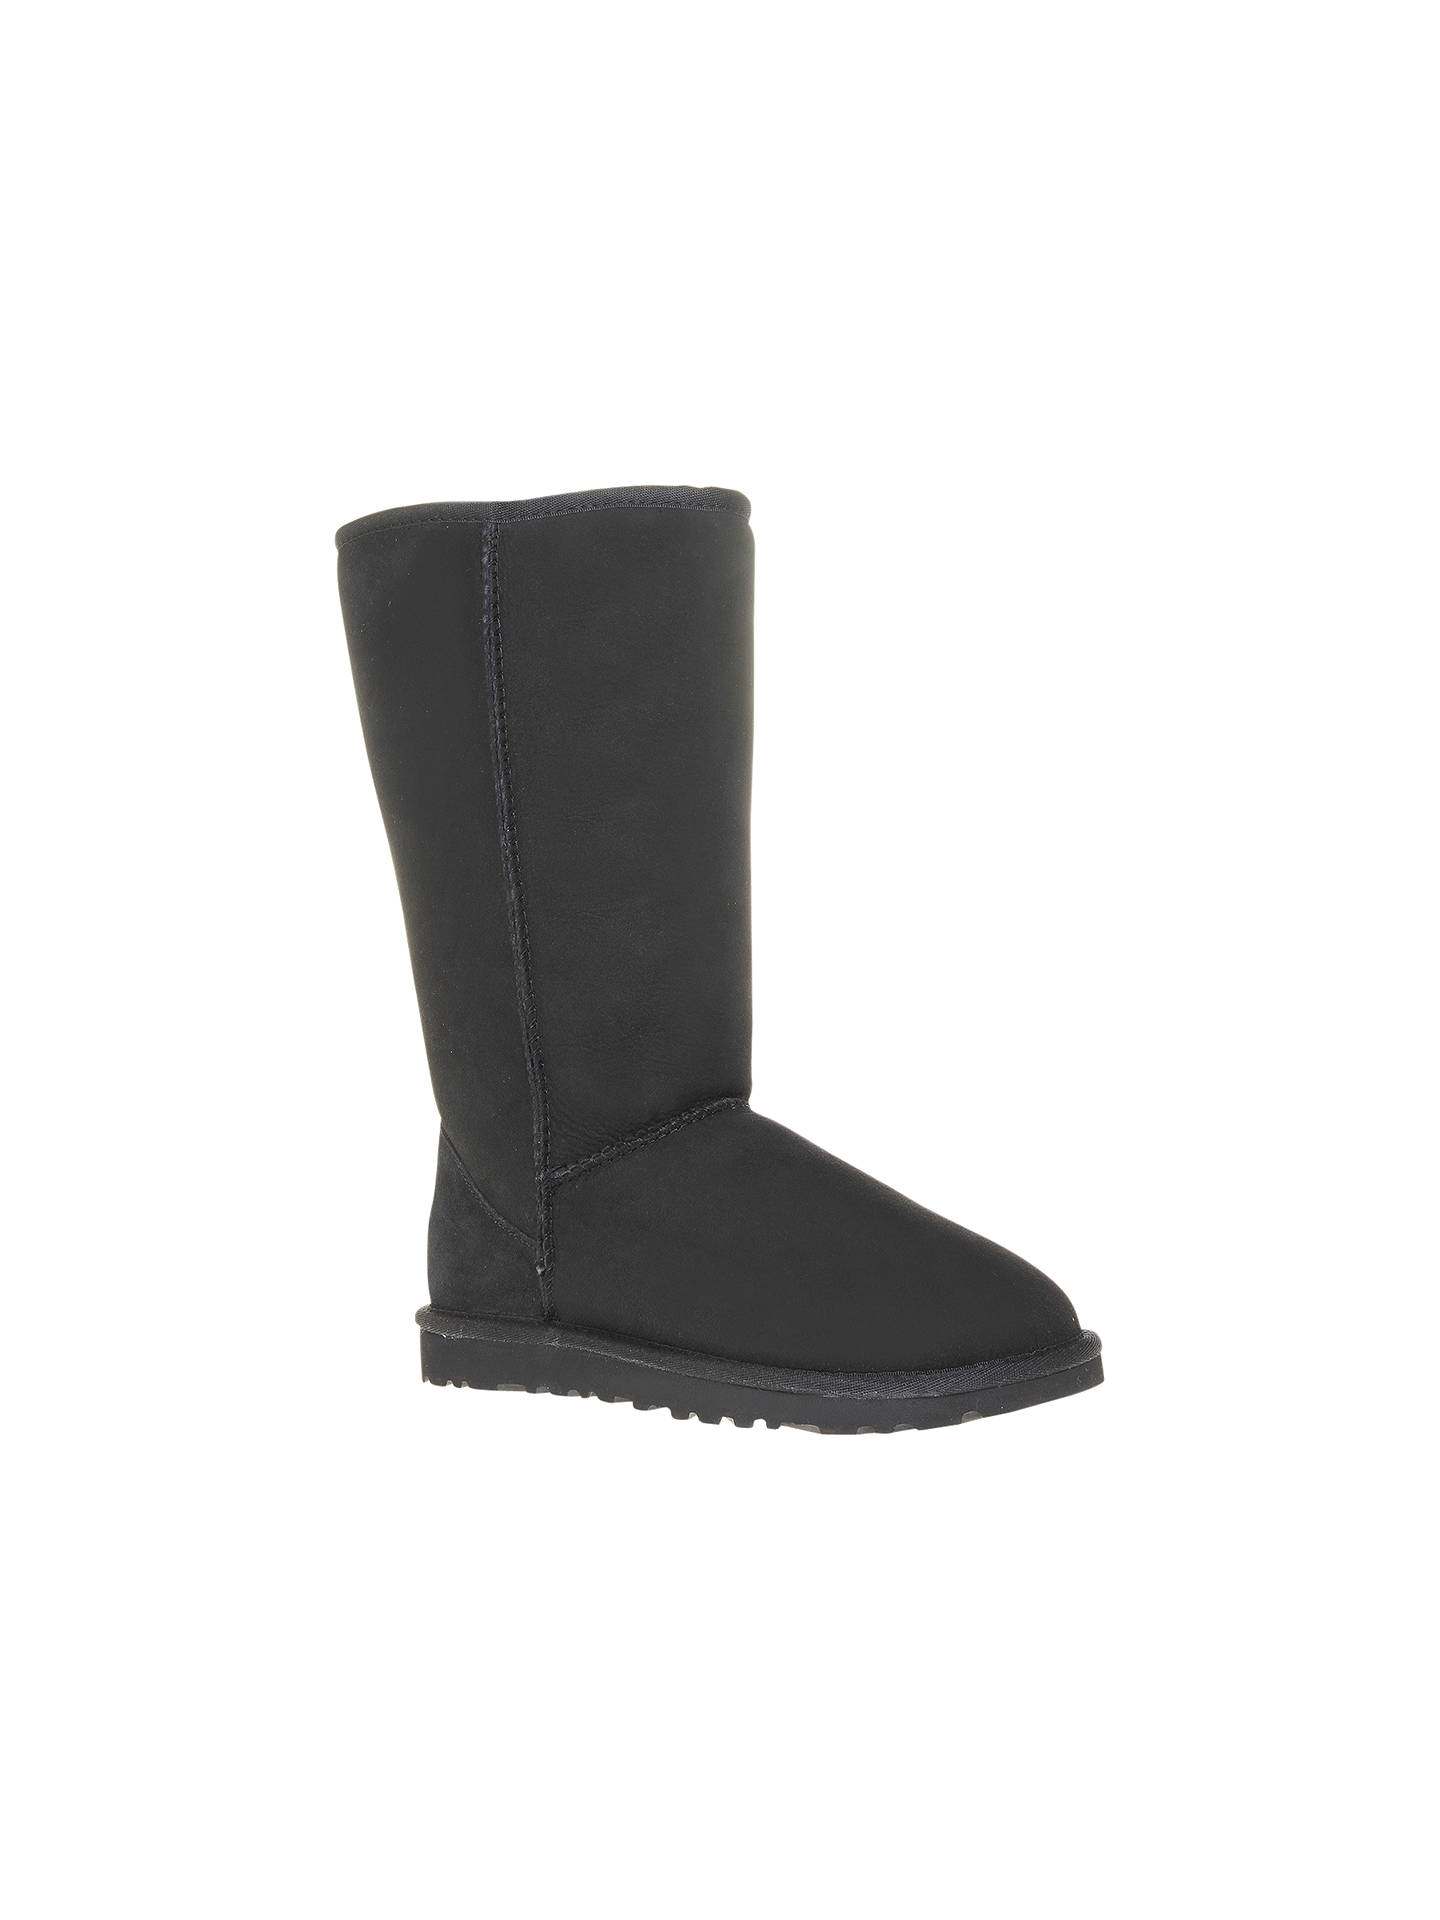 68d8614f1eb UGG Classic Tall Boots | Black at John Lewis & Partners